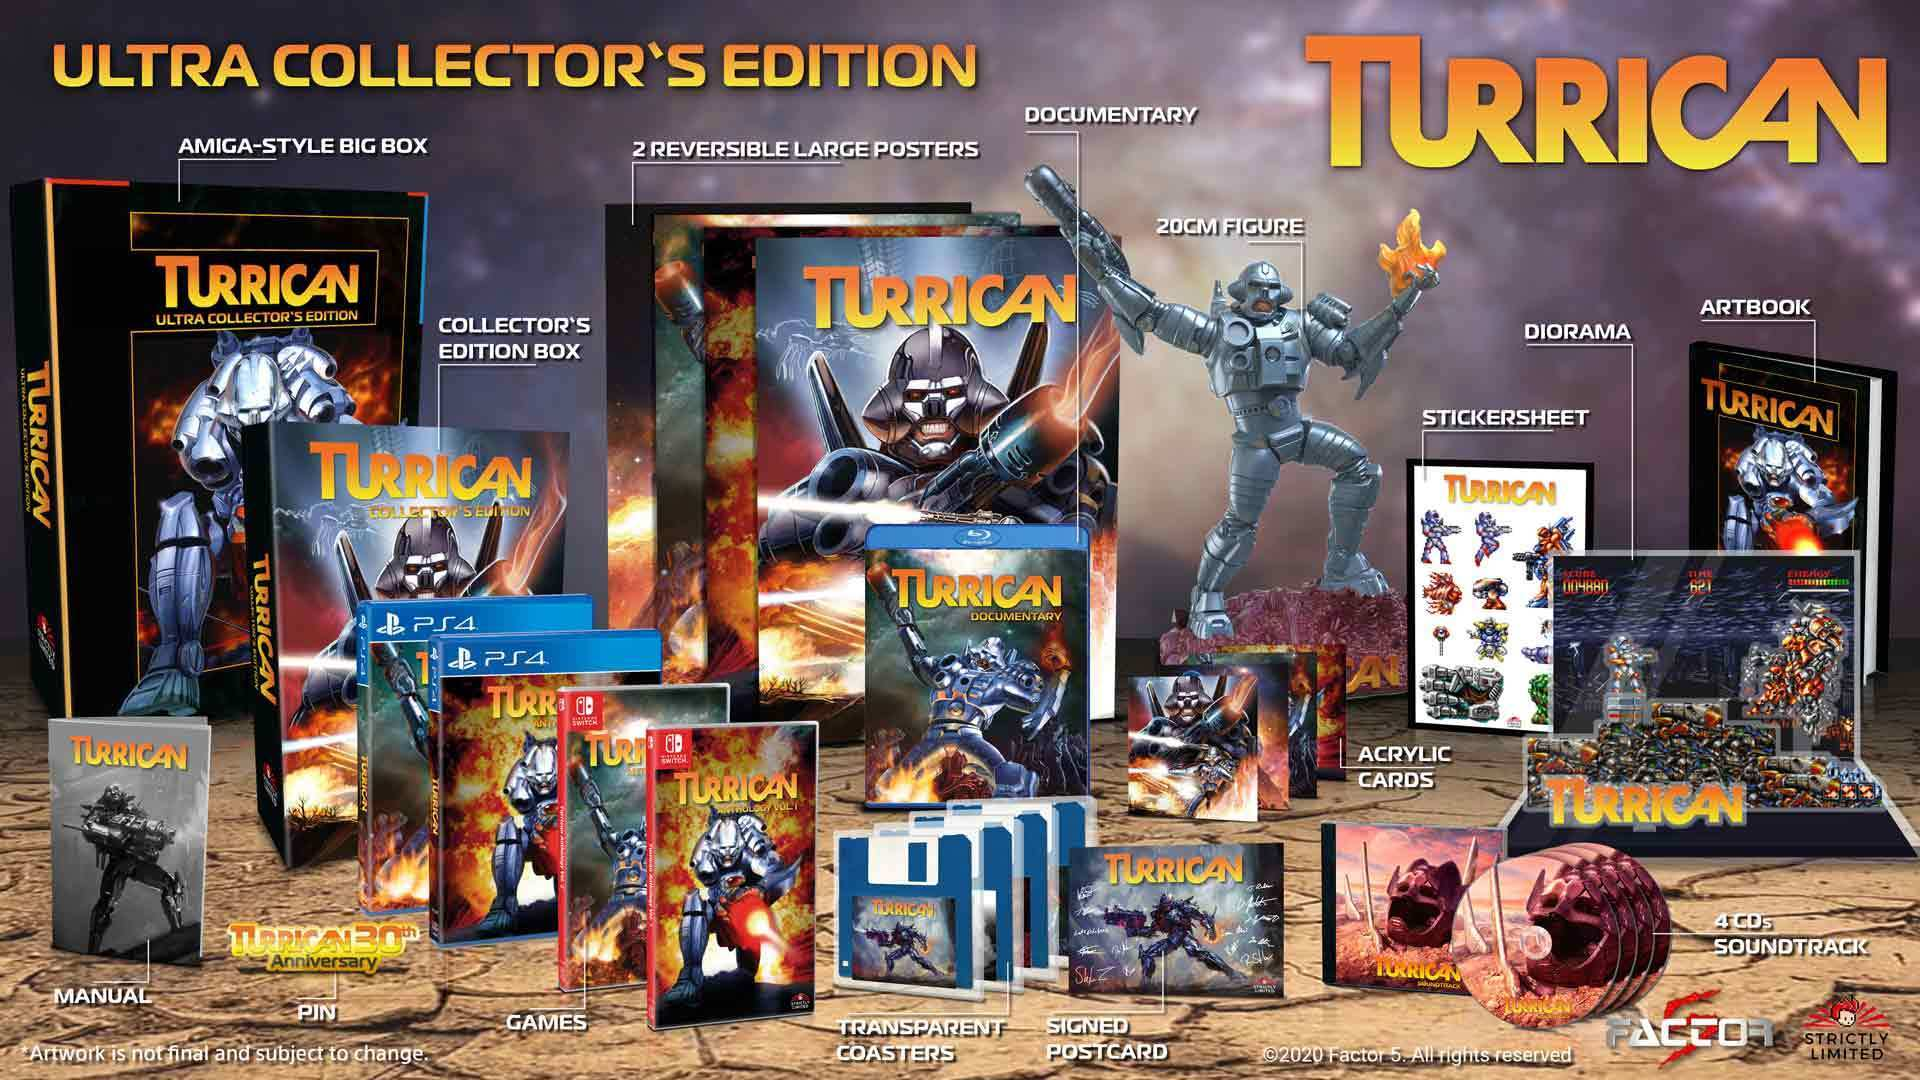 Turrican-Ultra-Collectors-Edition-Turricane-Anthology-Volume-1